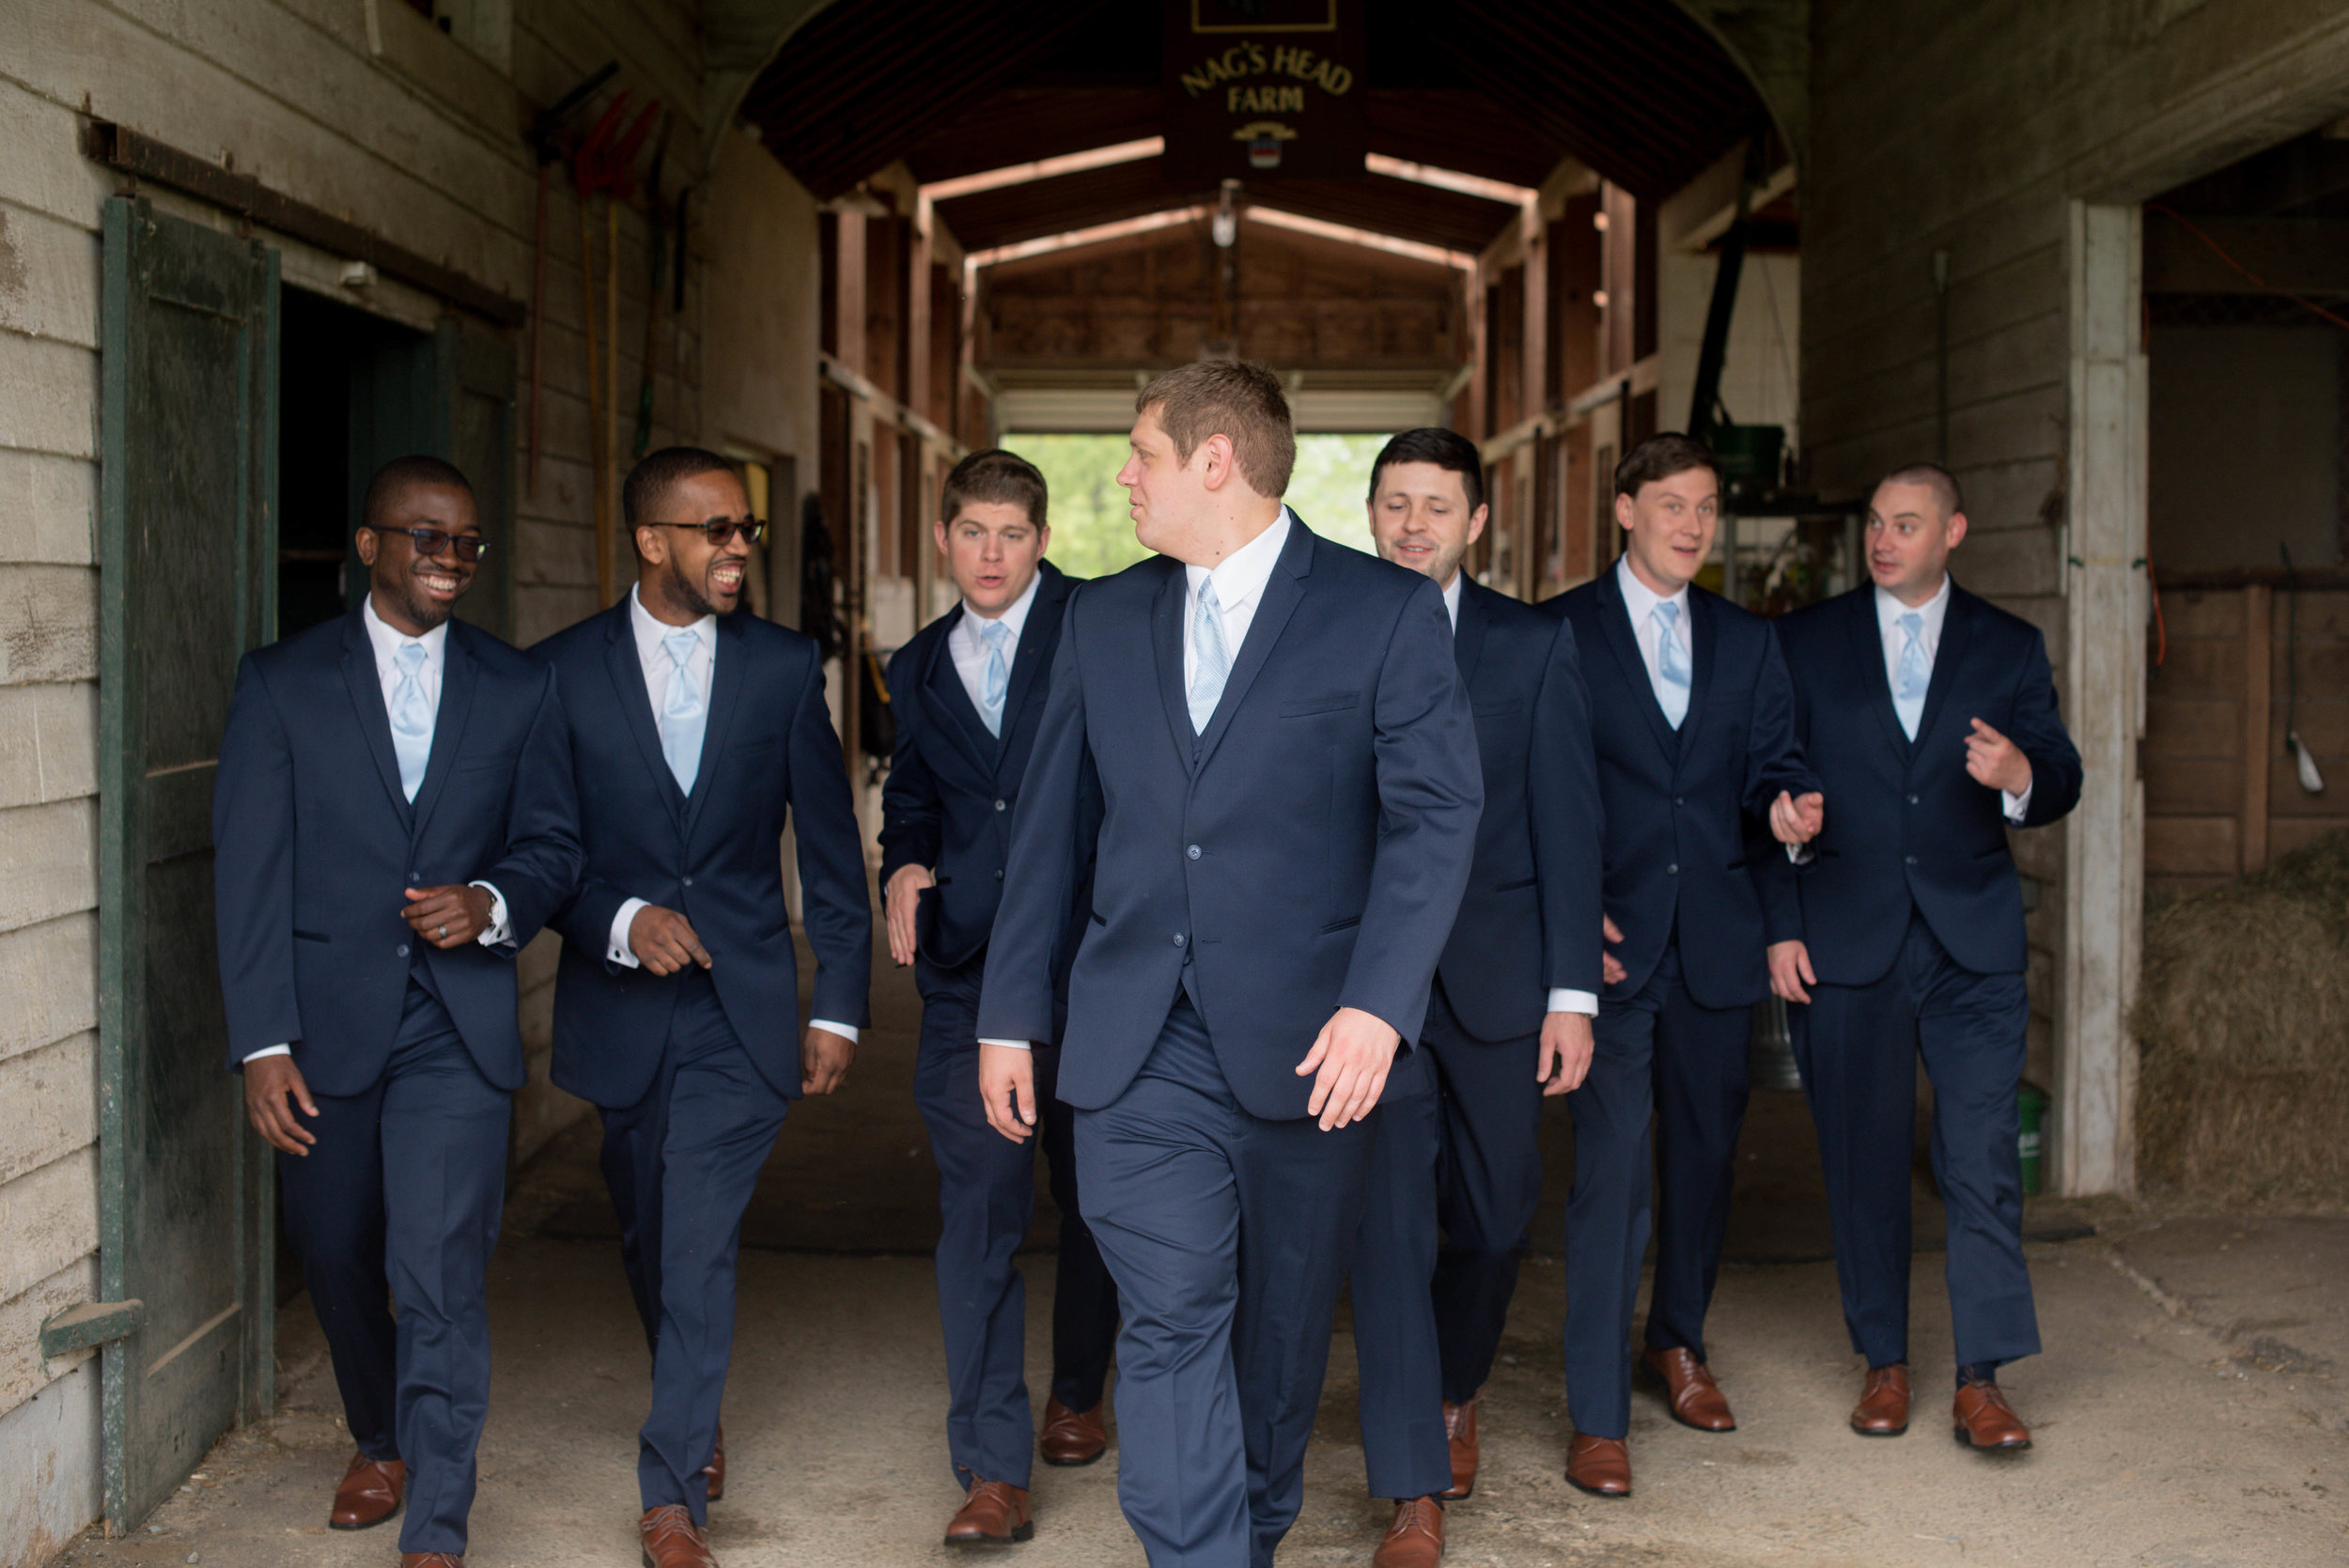 blue-ridge-wedding-ashley-nicole-photography-restoration-hall-crozetphotography-restorationhall-charlottesville-wedding_BPgroomsmen-5.jpg